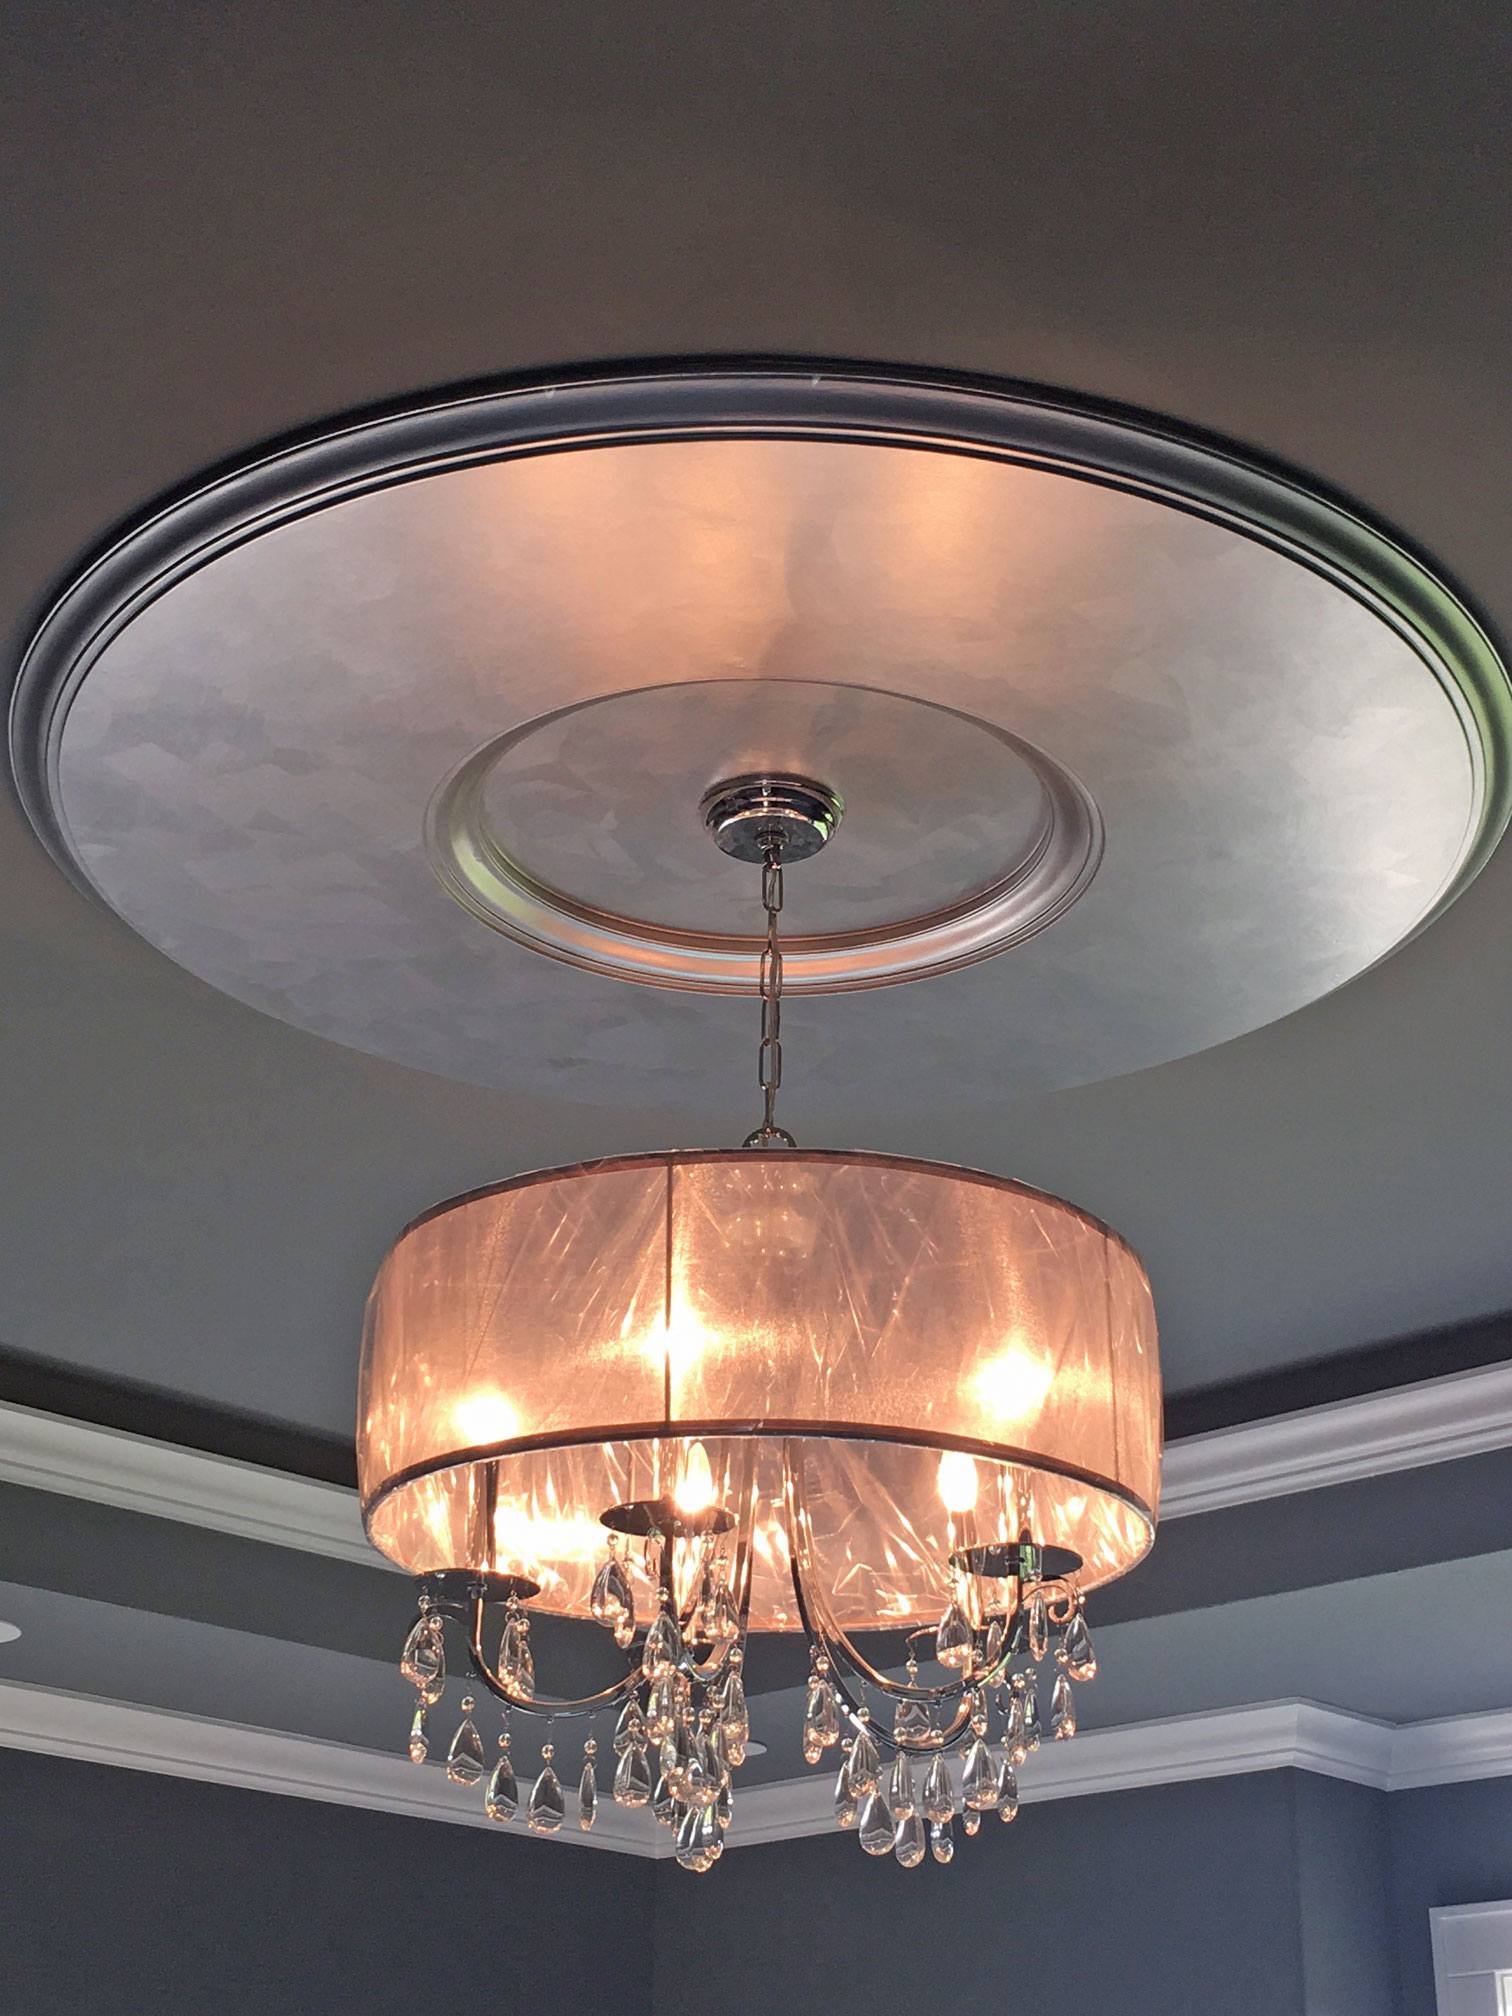 x pd shop medallion in polyurethane ekena millwork ceiling giana